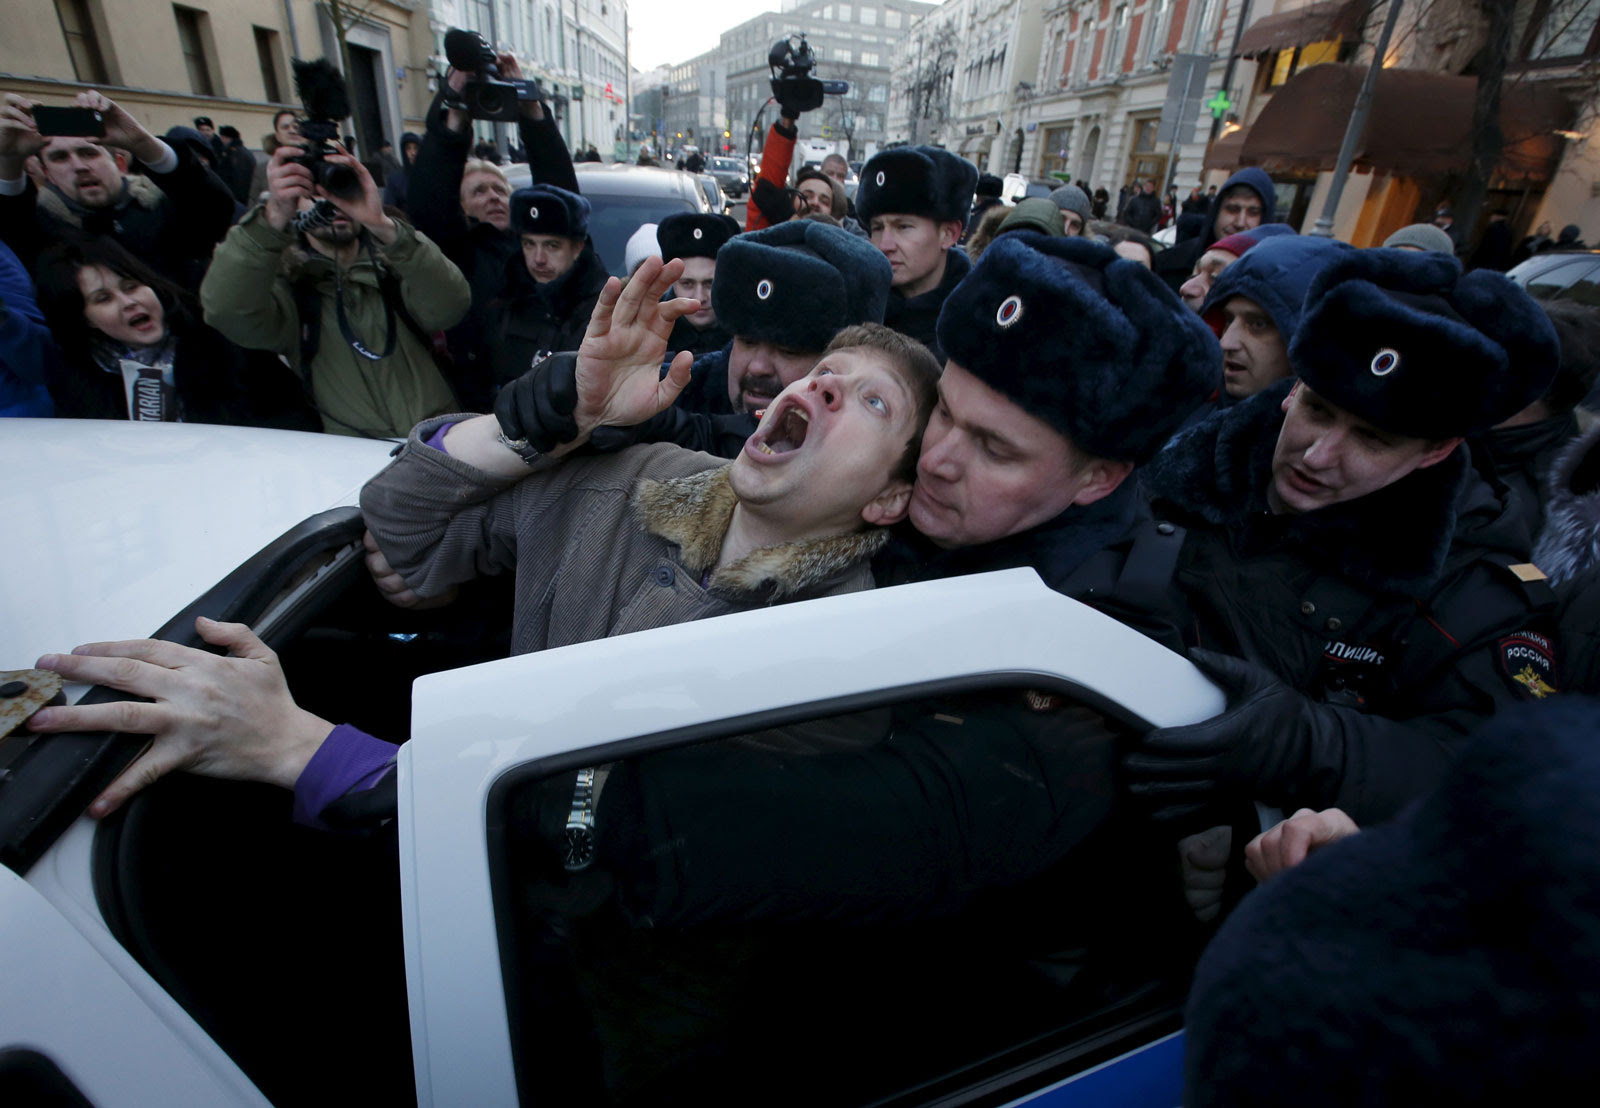 Police officers detain an activist who was taking part in a rally of foreign currency mortgage holders, near the Central Bank headquarters, Moscow, Russia, February 8, 2016